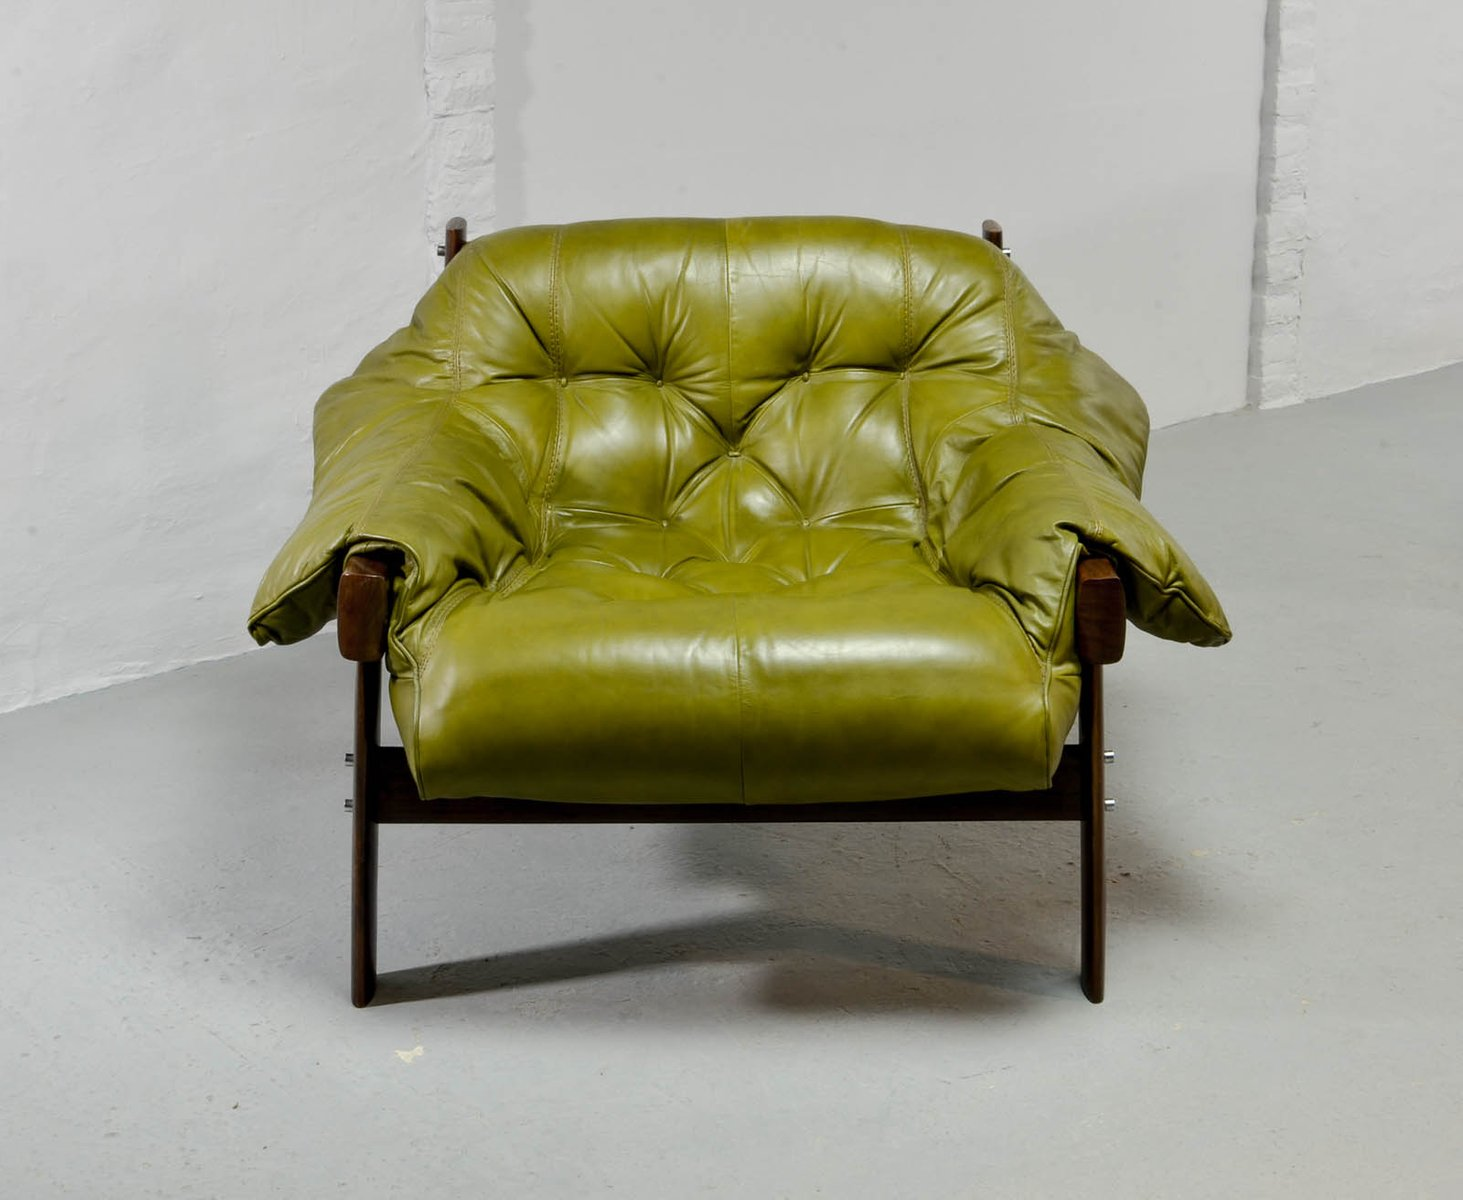 Olive Green Leather Lounge Chairs Amp Ottoman By Percival